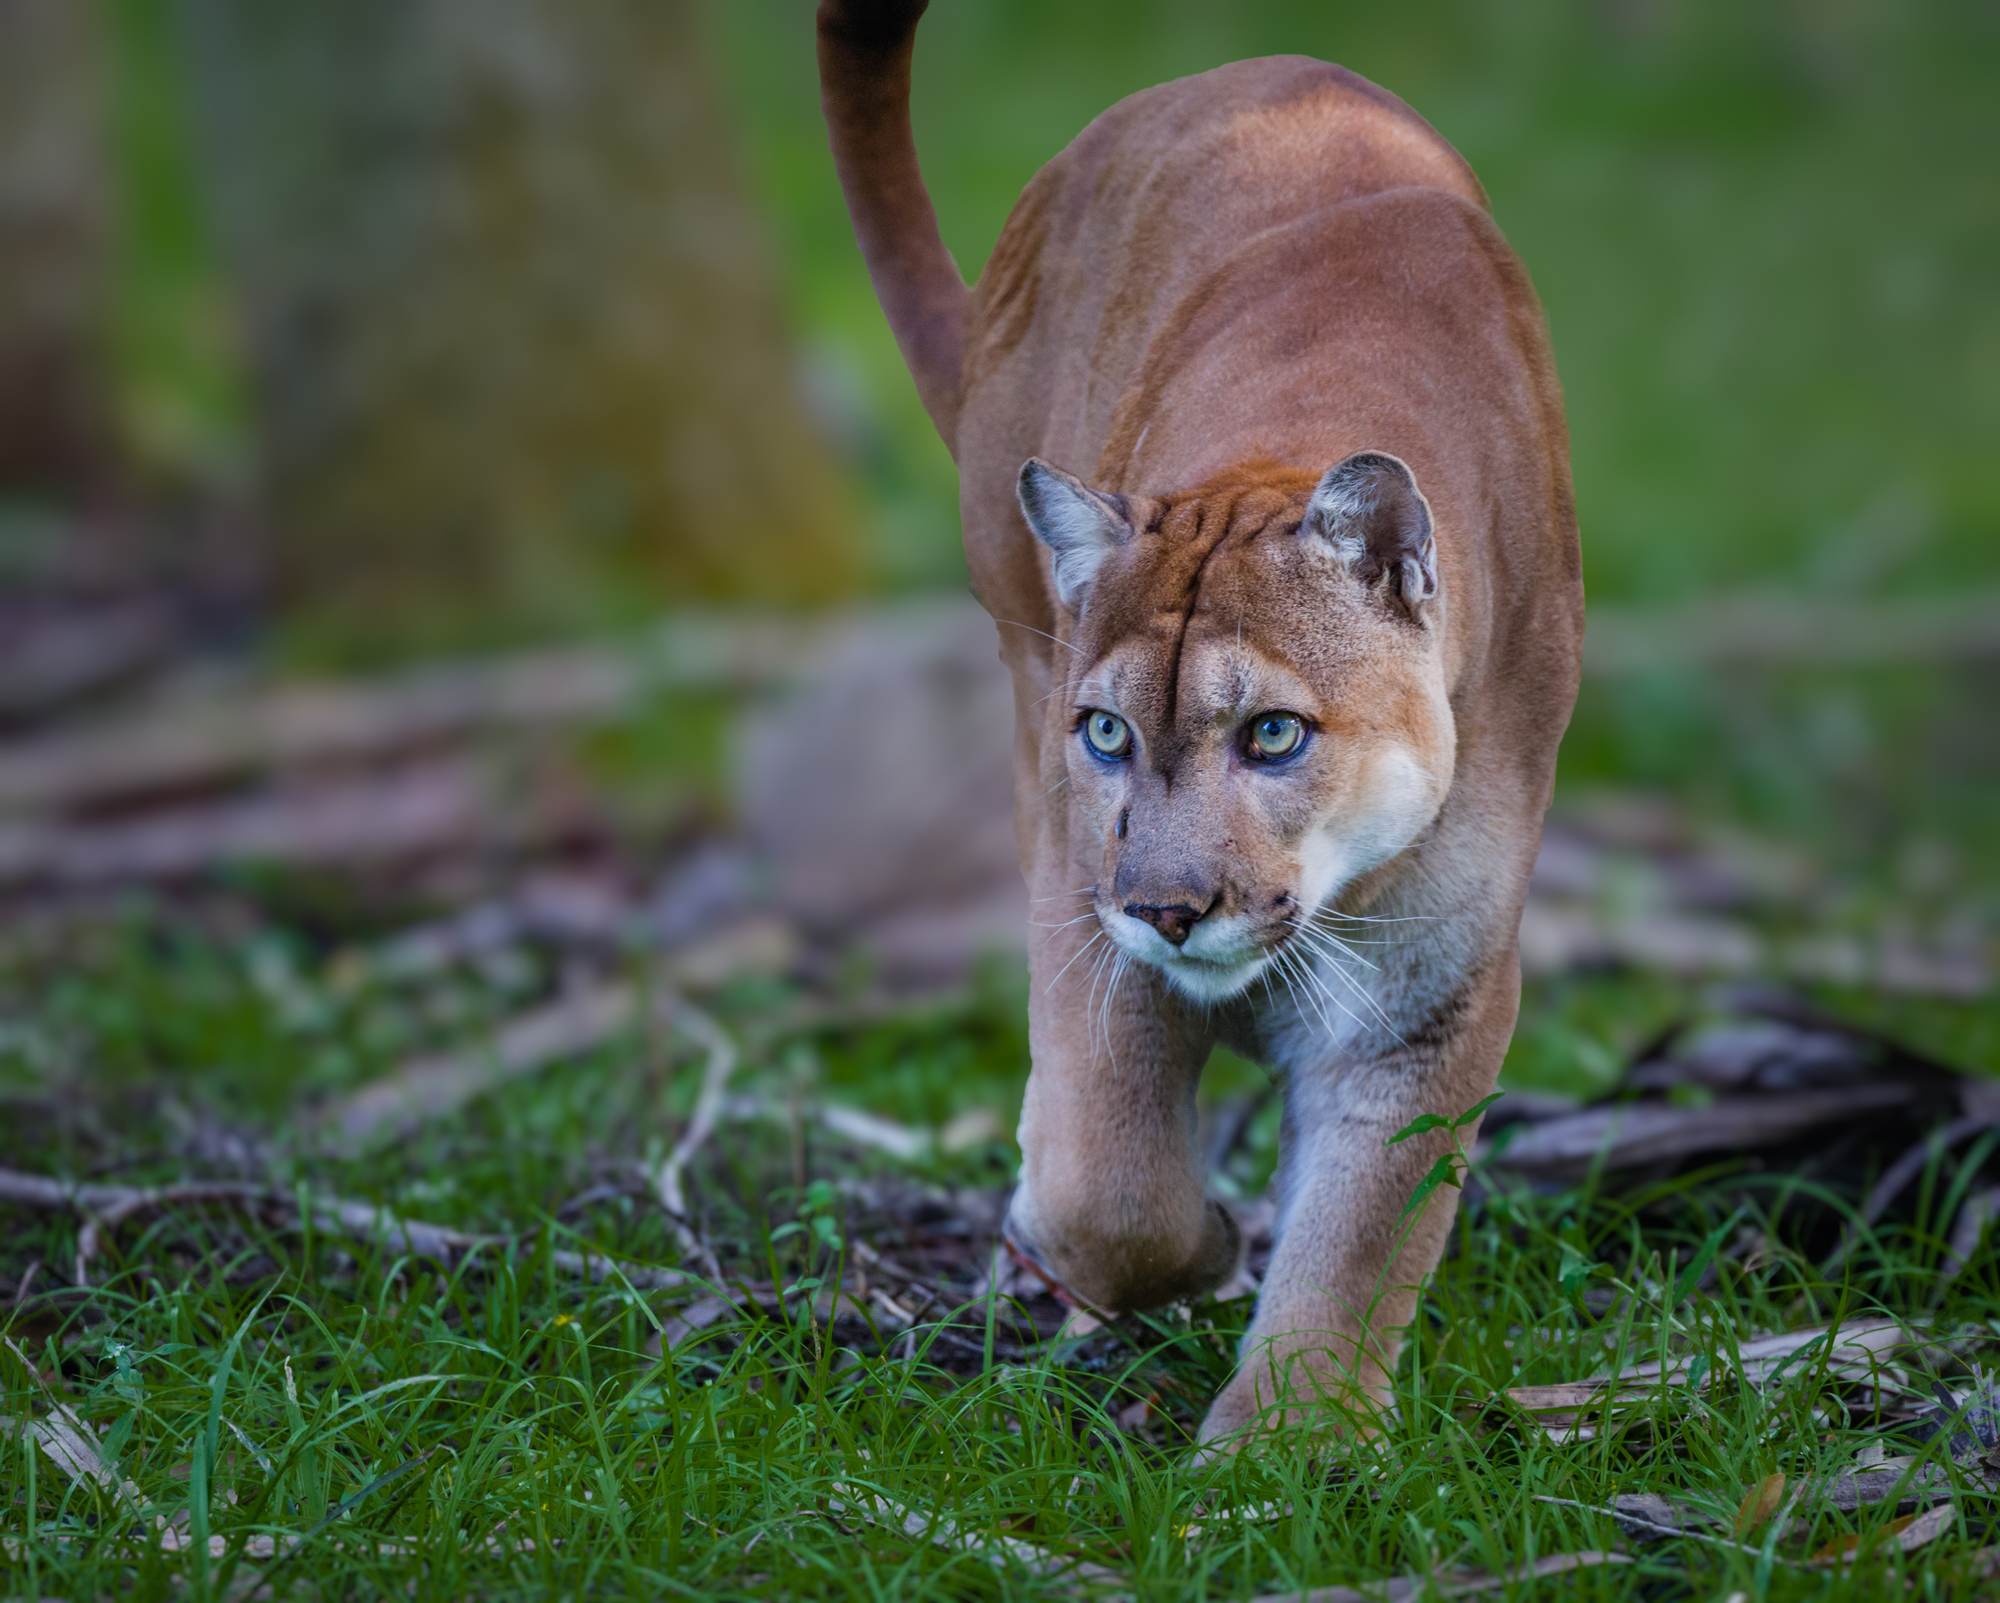 Florida Panther - (Puma concolor coryi) is one of the most well-known endangered species in the Everglades